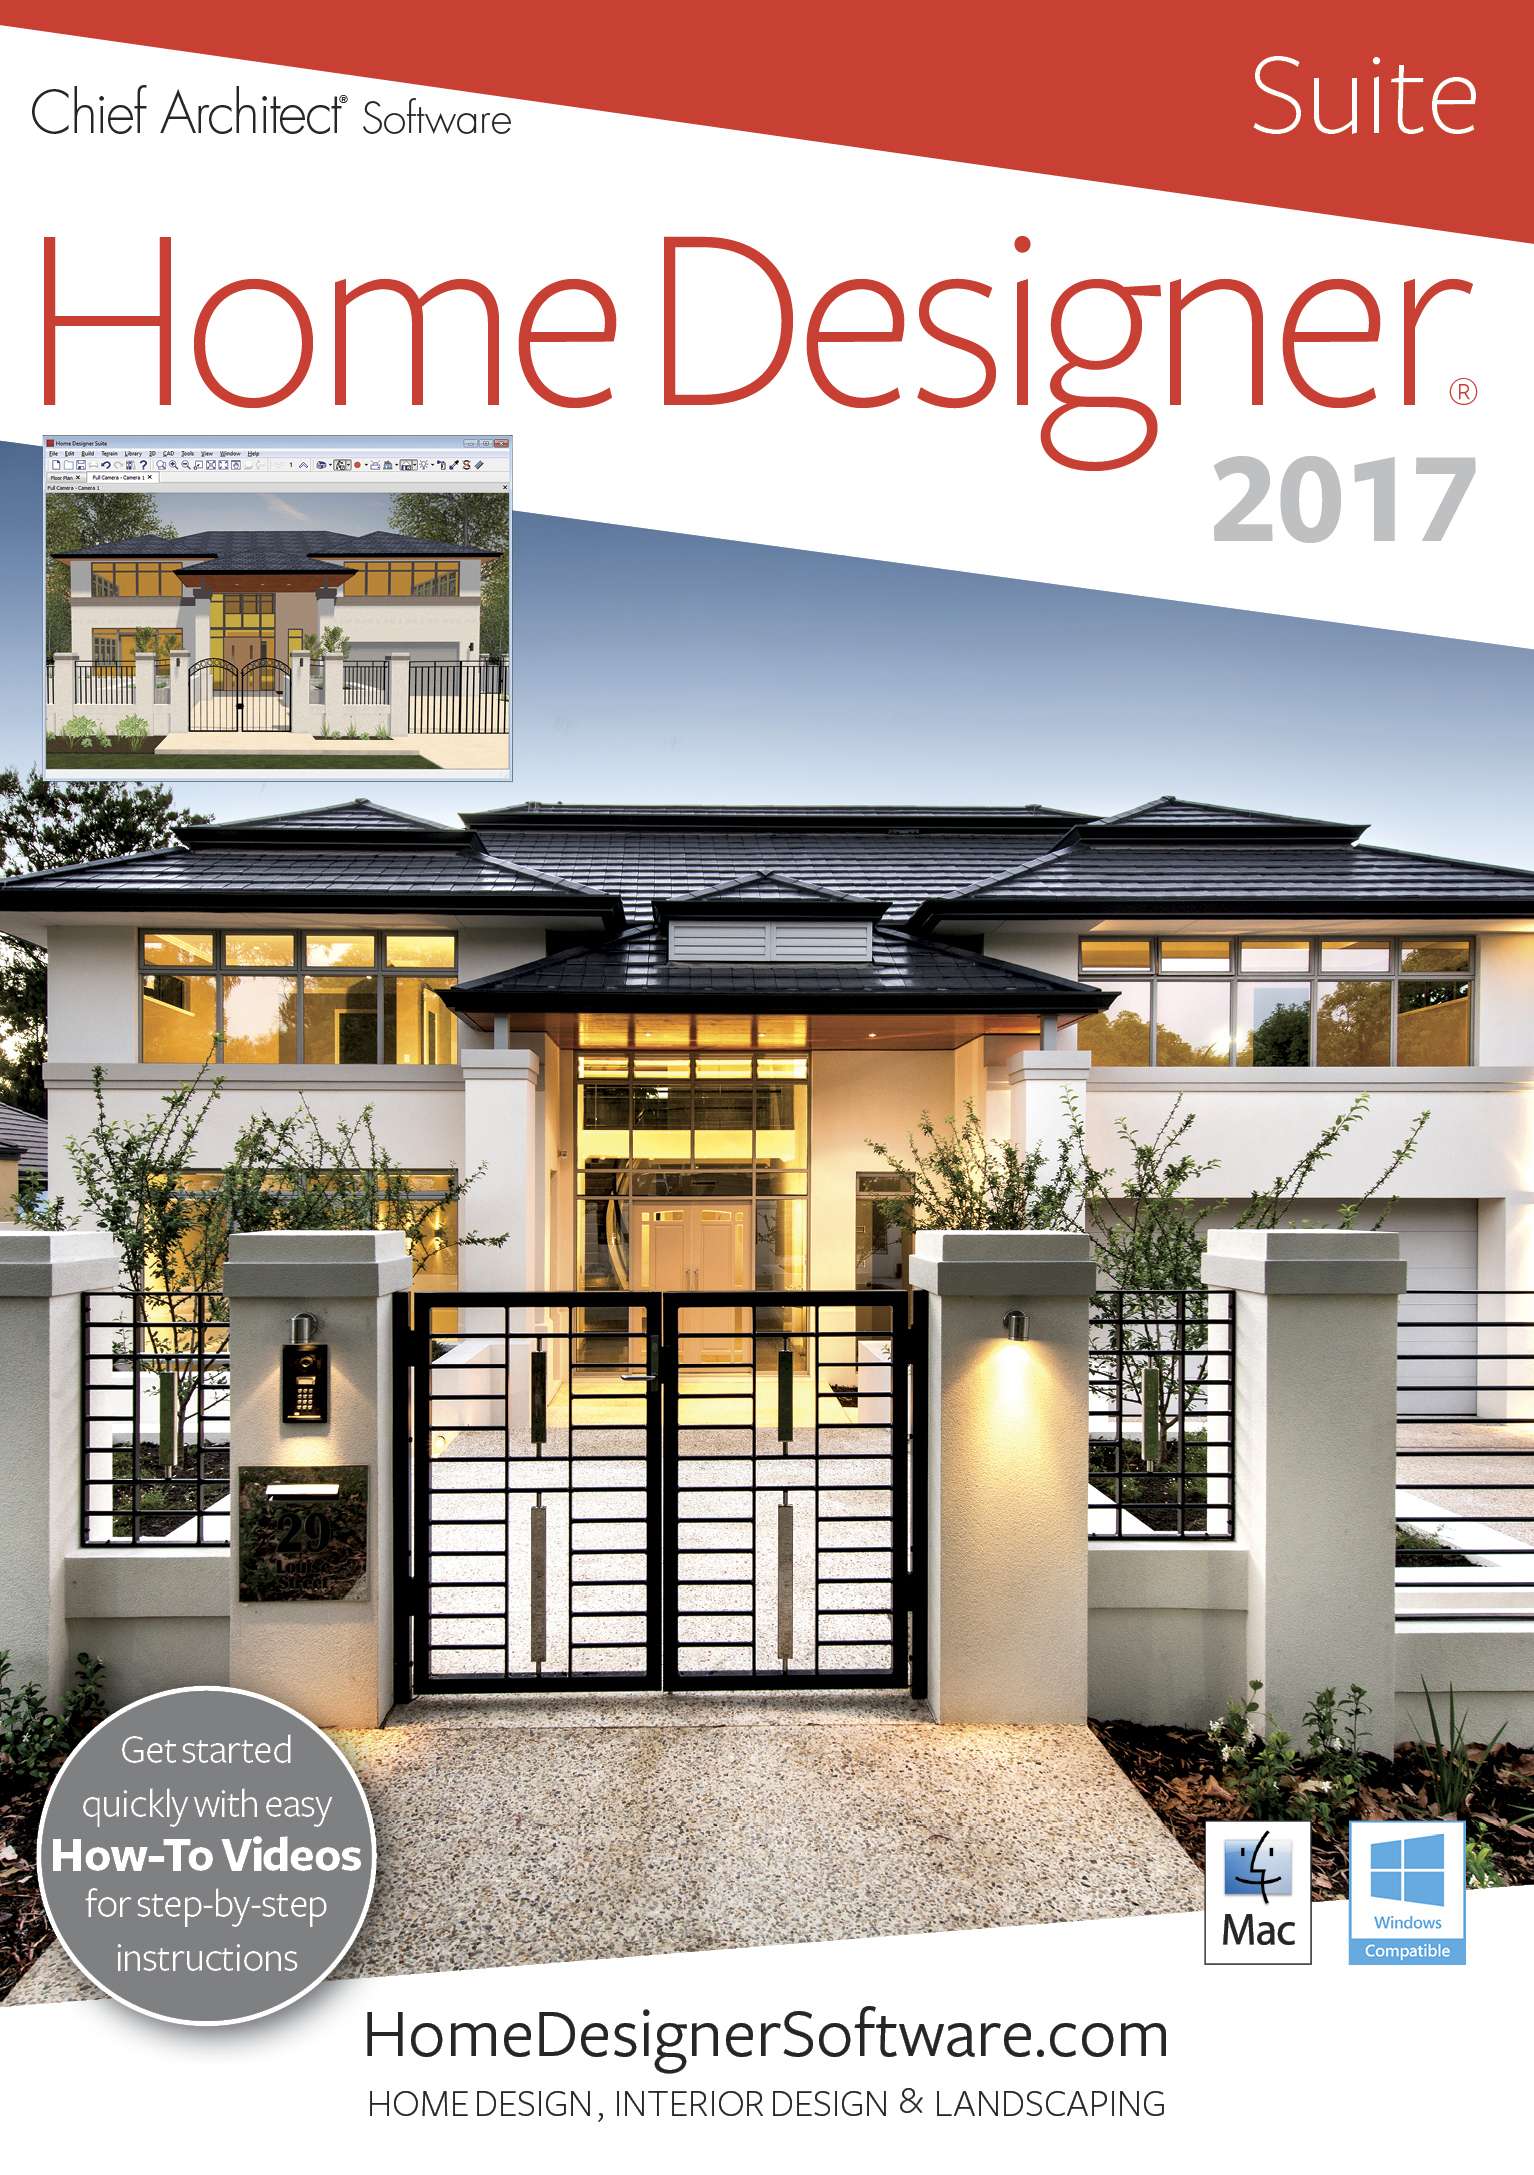 Amazon.com: Home Designer Suite 2017 [Mac]: on ashampoo home designer, architects residential building designer, chief architect home design software, chief architect interior designer 9.0,